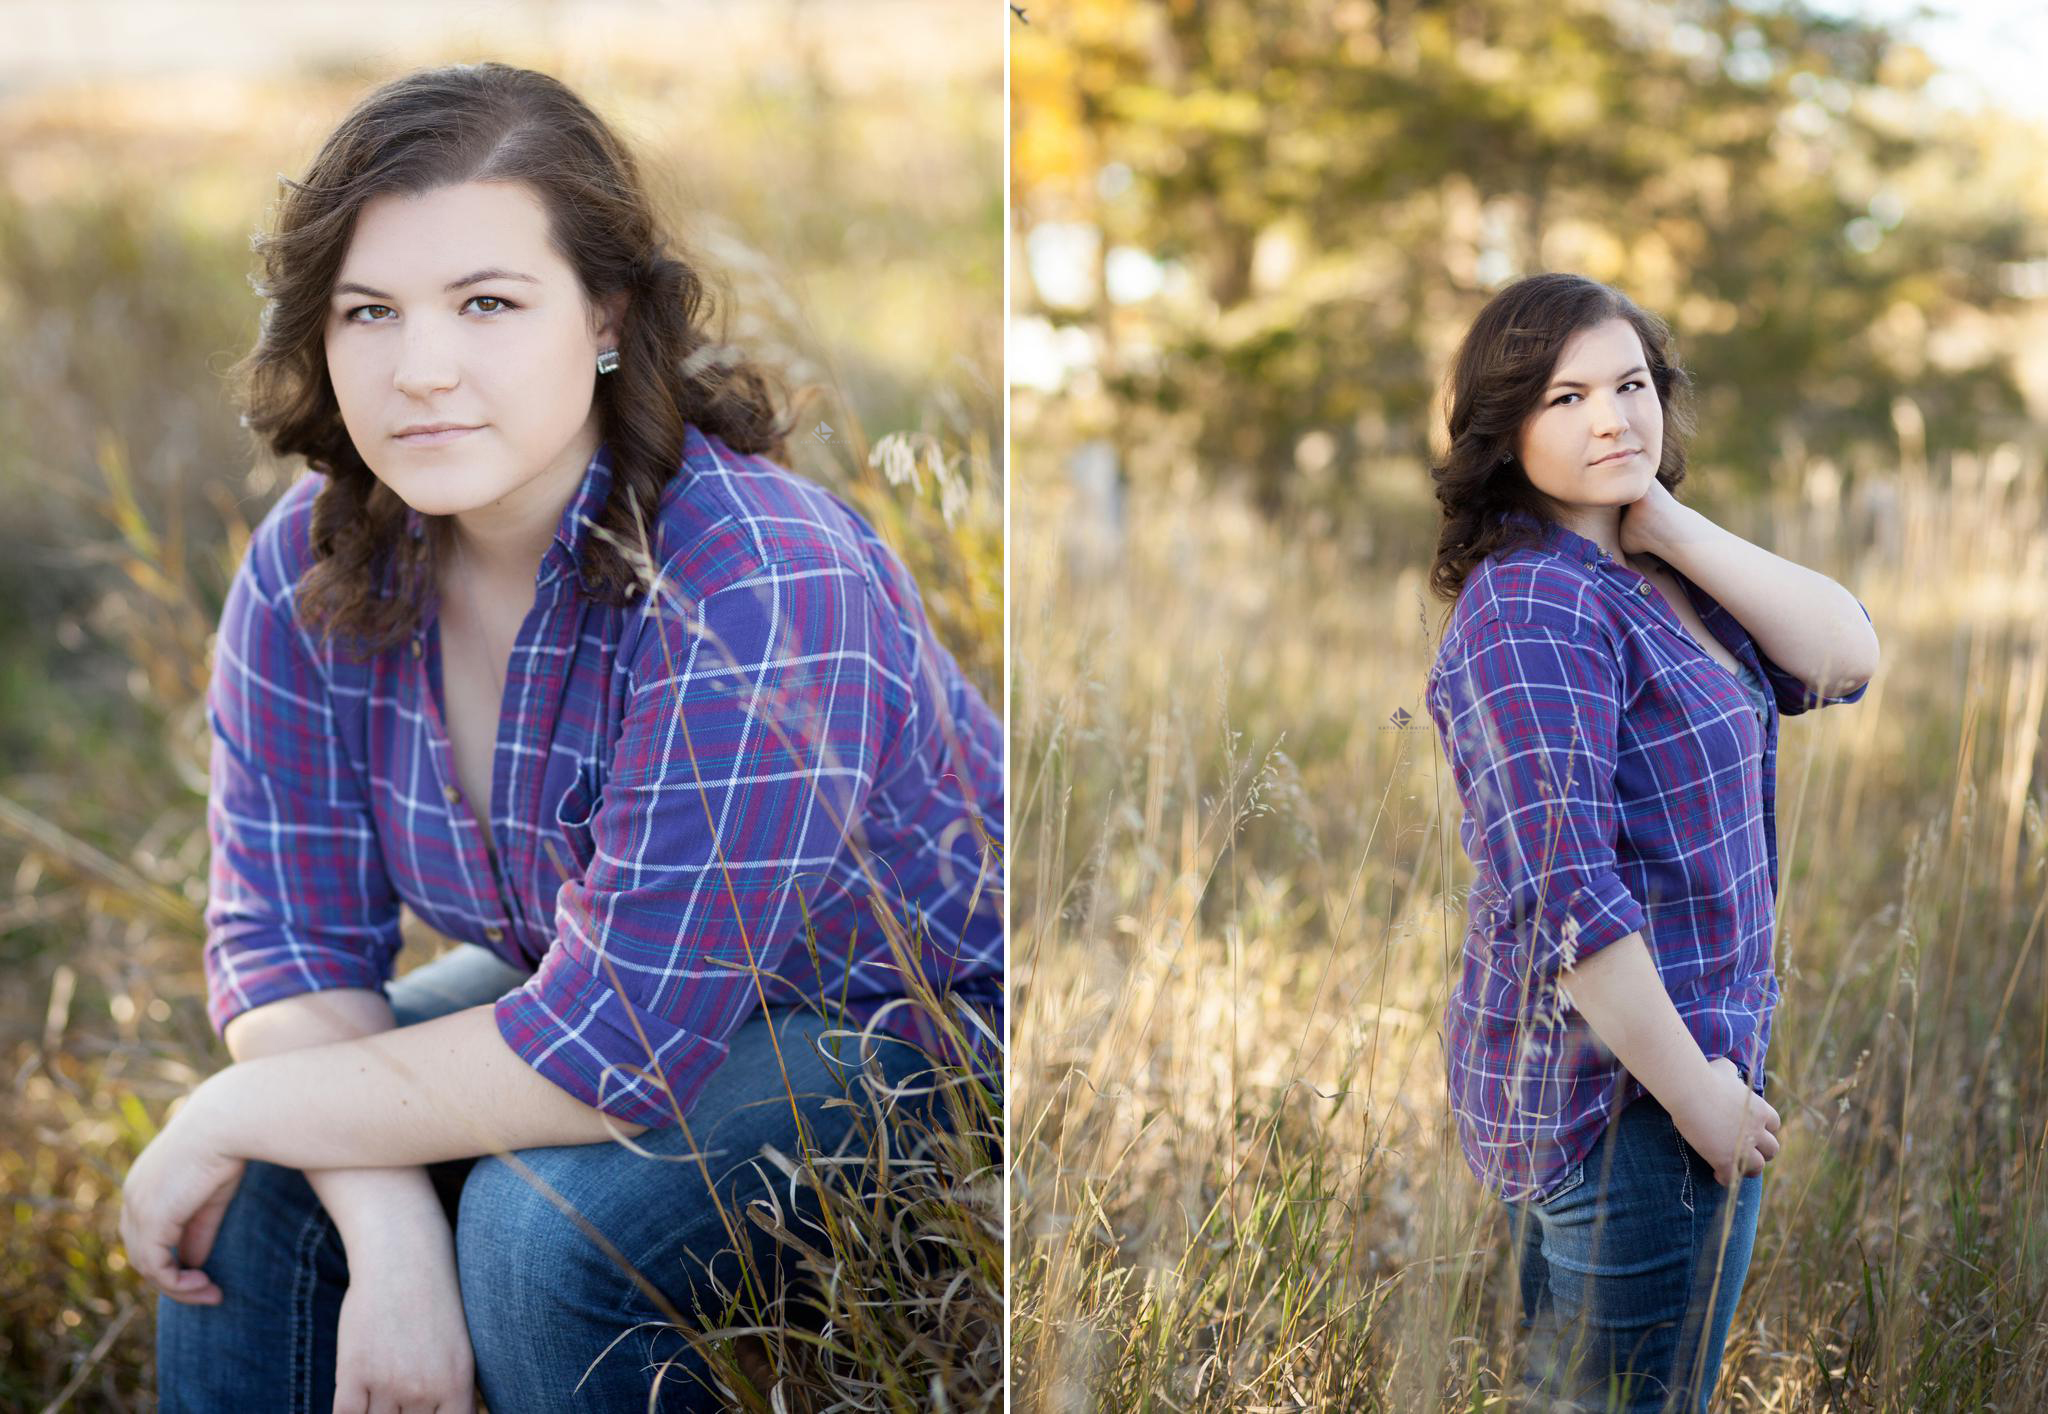 A brunette senior girl in a purple plaid shirt sitting in tall grass